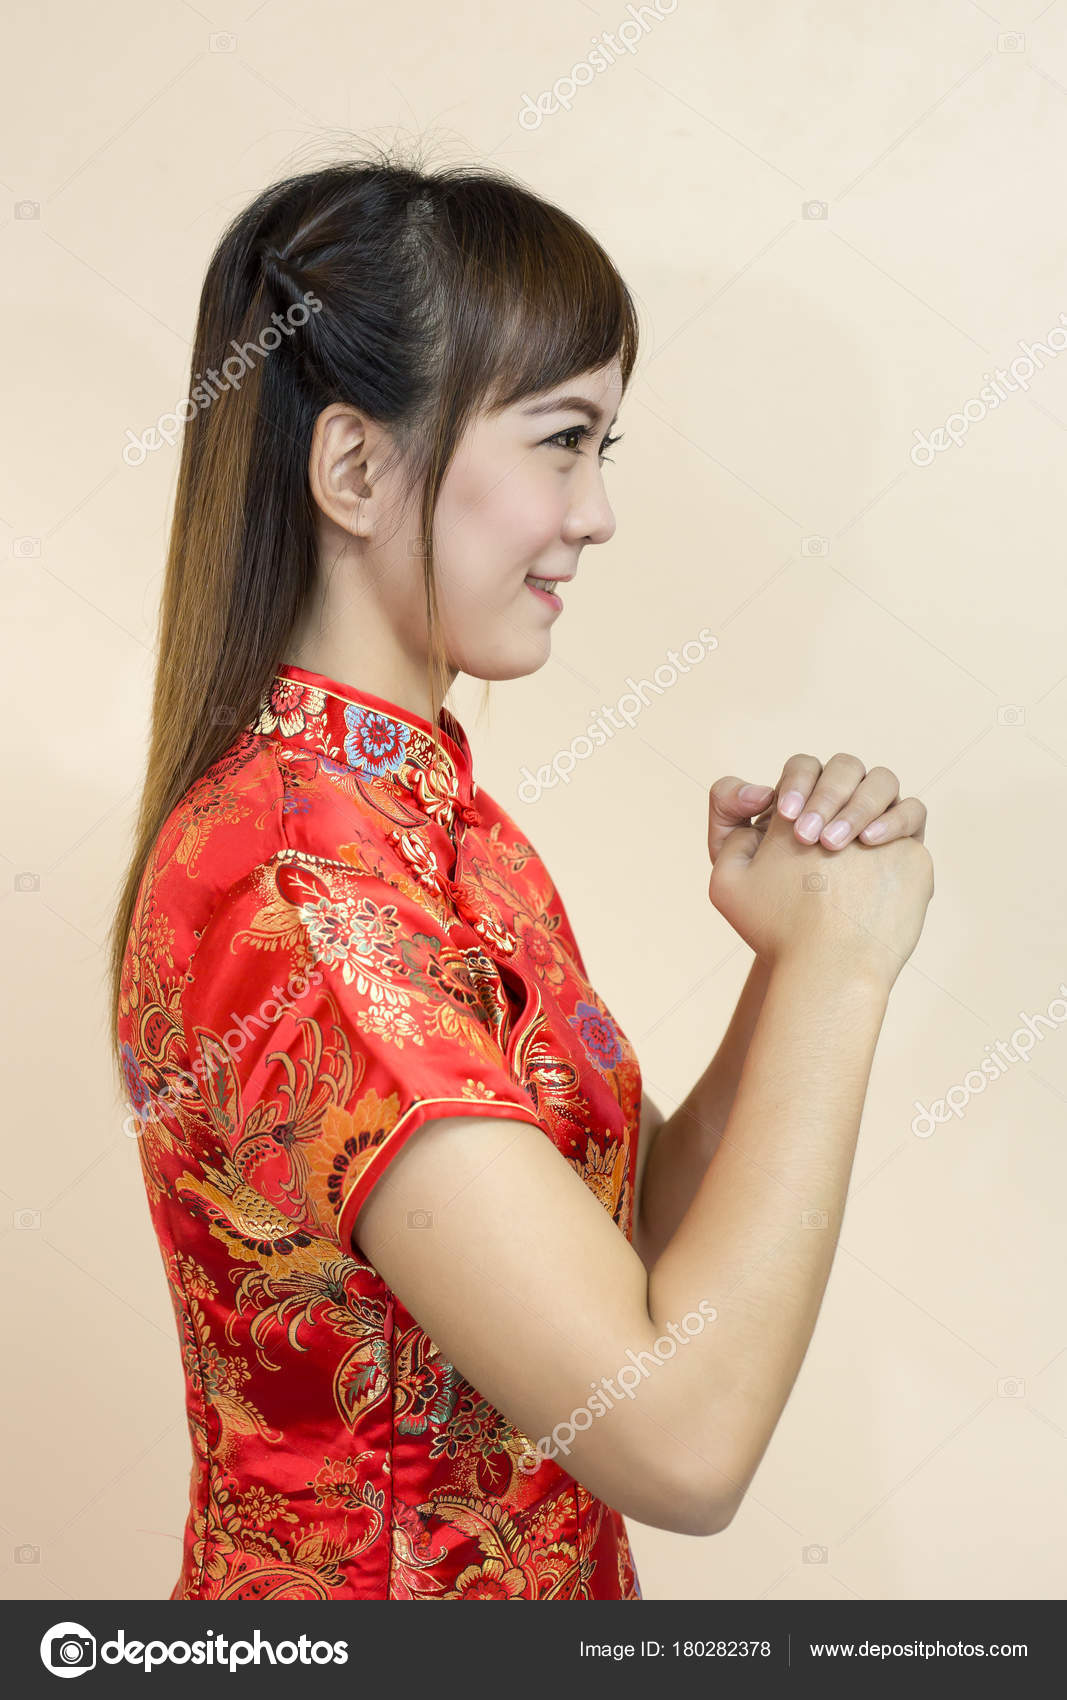 Asian Woman Greeting Traditional Chinese Cheongsam Hand Lift Welcome